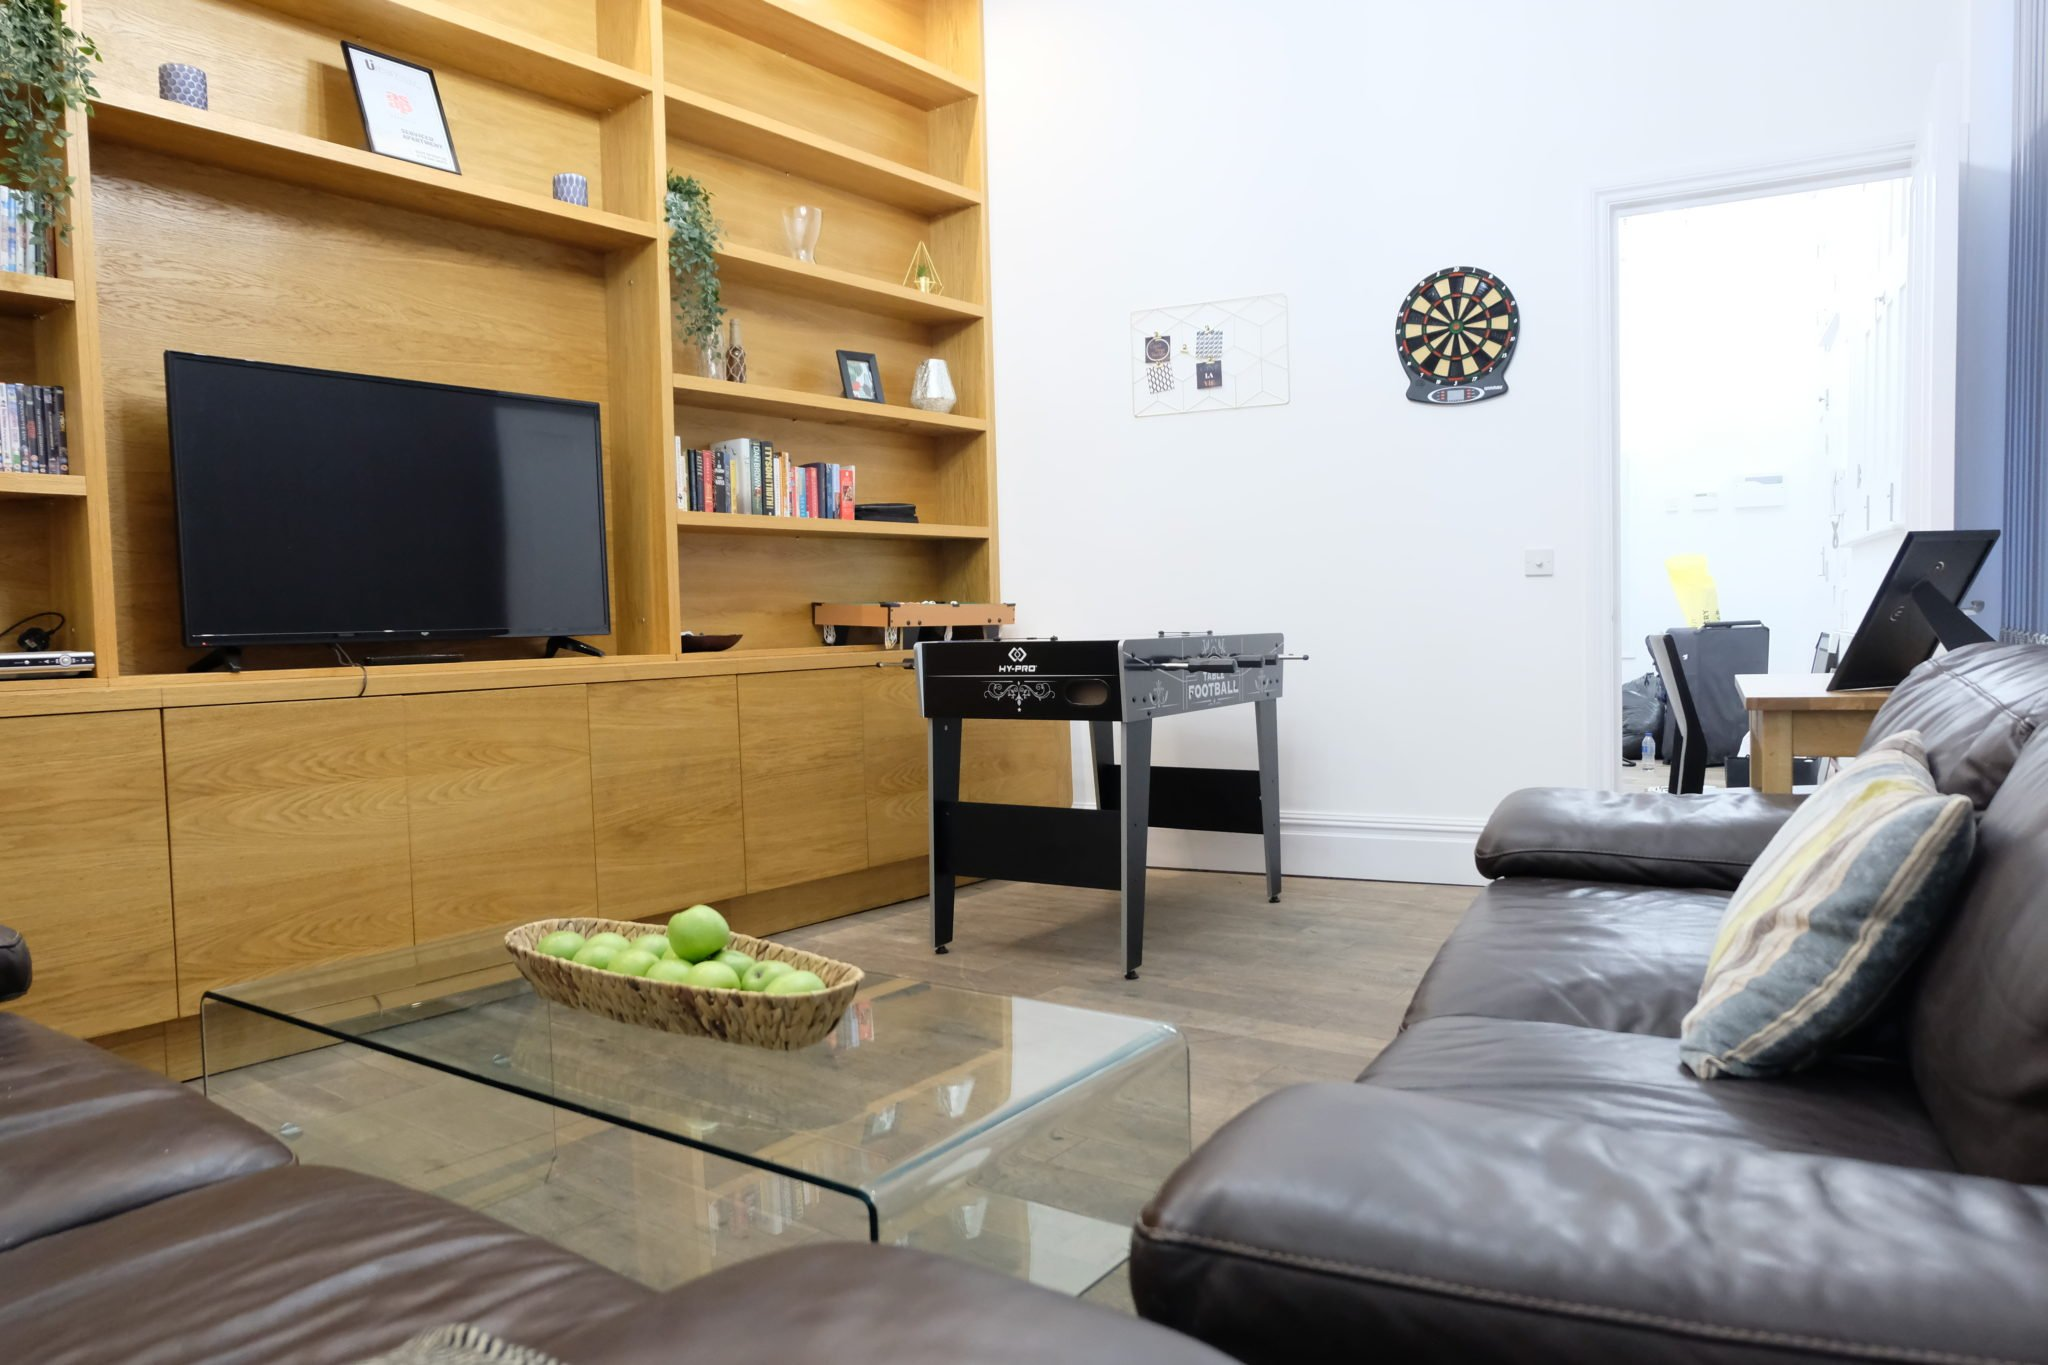 Luxury Townhouses central London Oxford Street Mansions Short Let Serviced Accommodation Tottenham Court Road Urban Stay 30